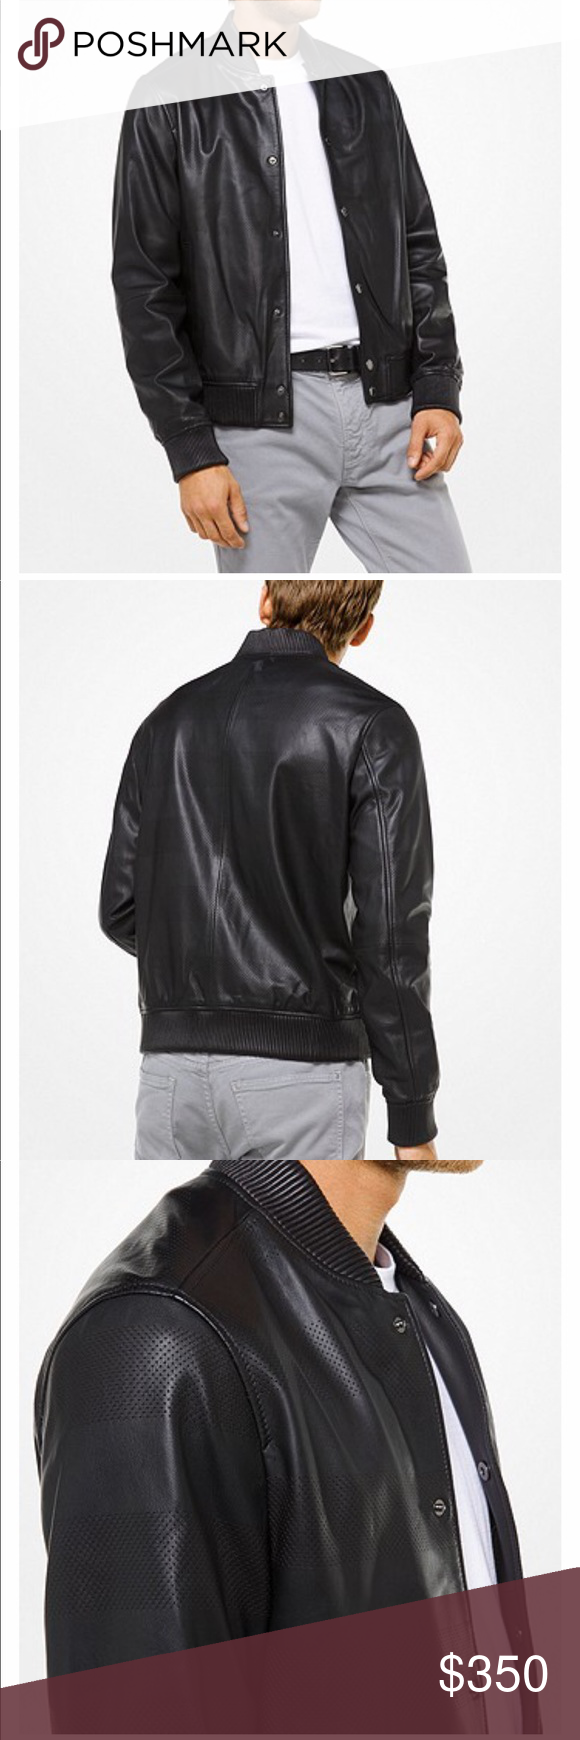 f7135af0e883 Michael Kors Men s Leather Jacket Michael Kors Perforated Leather Bomber  Style  CSS88CCG4LK A modern take on an iconic silhouette